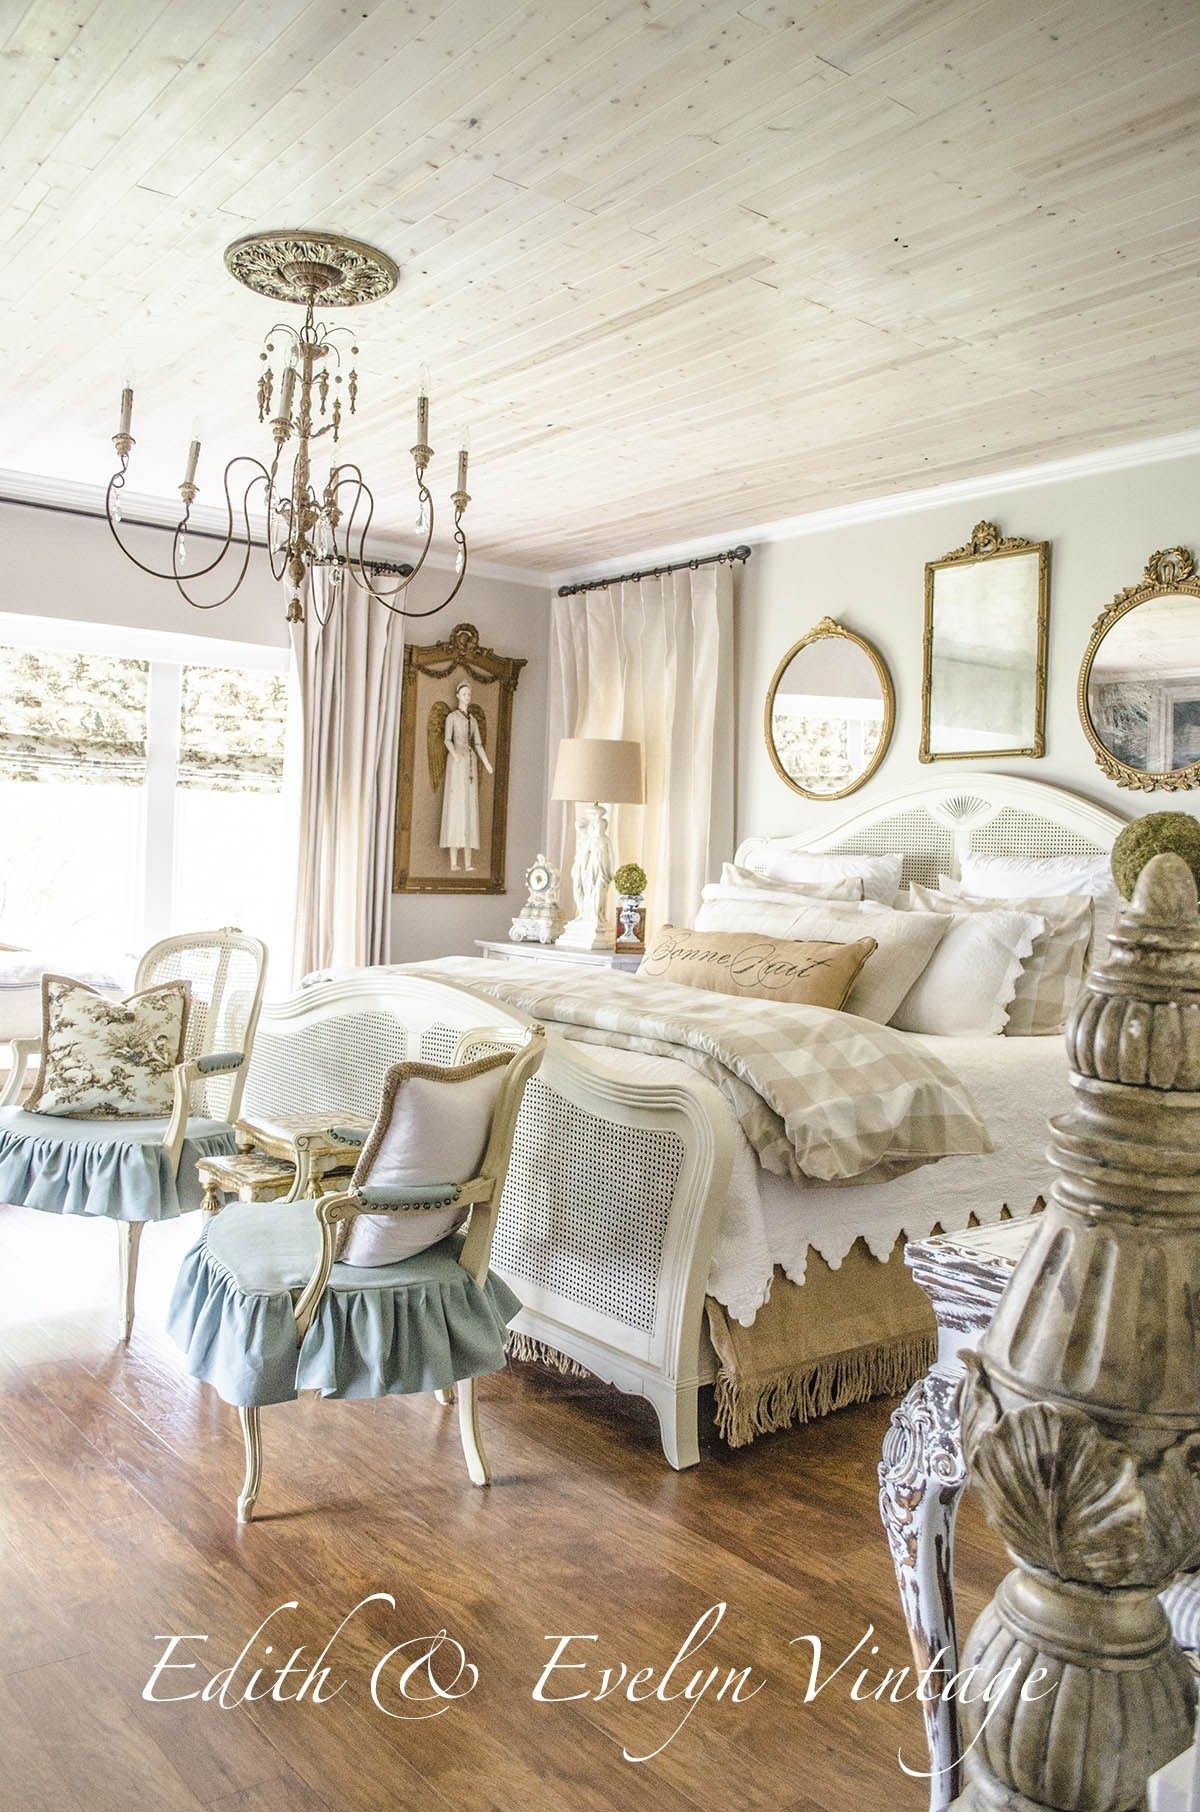 Photo of French Country Fridays No. 19 ~ Transformations, Kitchens, French Charm and More! | Edith & Evelyn